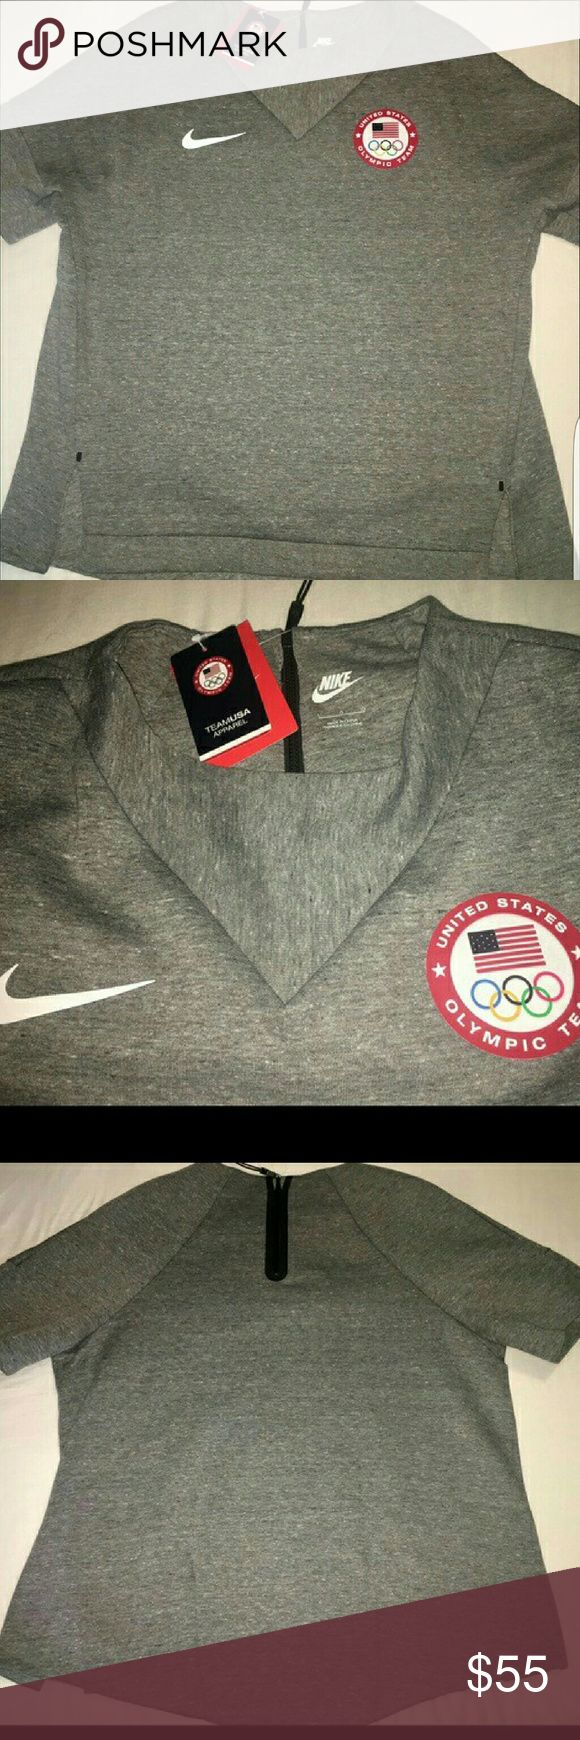 Nike 2016 Olympics Team USA sweatshirt Awesome unique sweatshirt from 2016 Olympics, brand new never worn. High low cut thick material, reposh, too big for me or I wouldn't be selling! Nike Tops